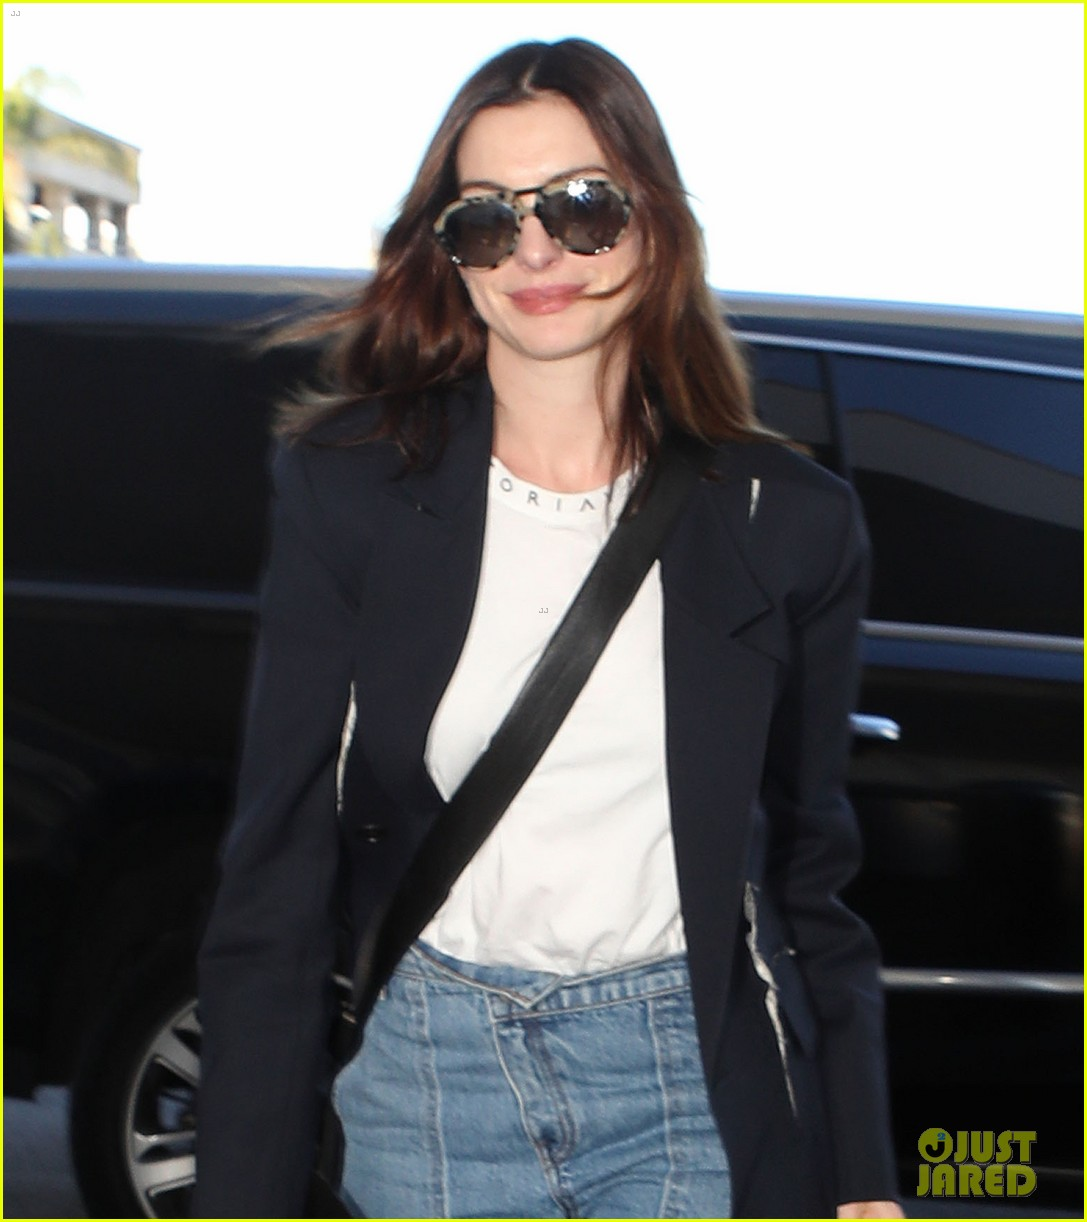 Anne Hathaway Movie 2019: Anne Hathaway Flies To New York For More 'Serenity' Press